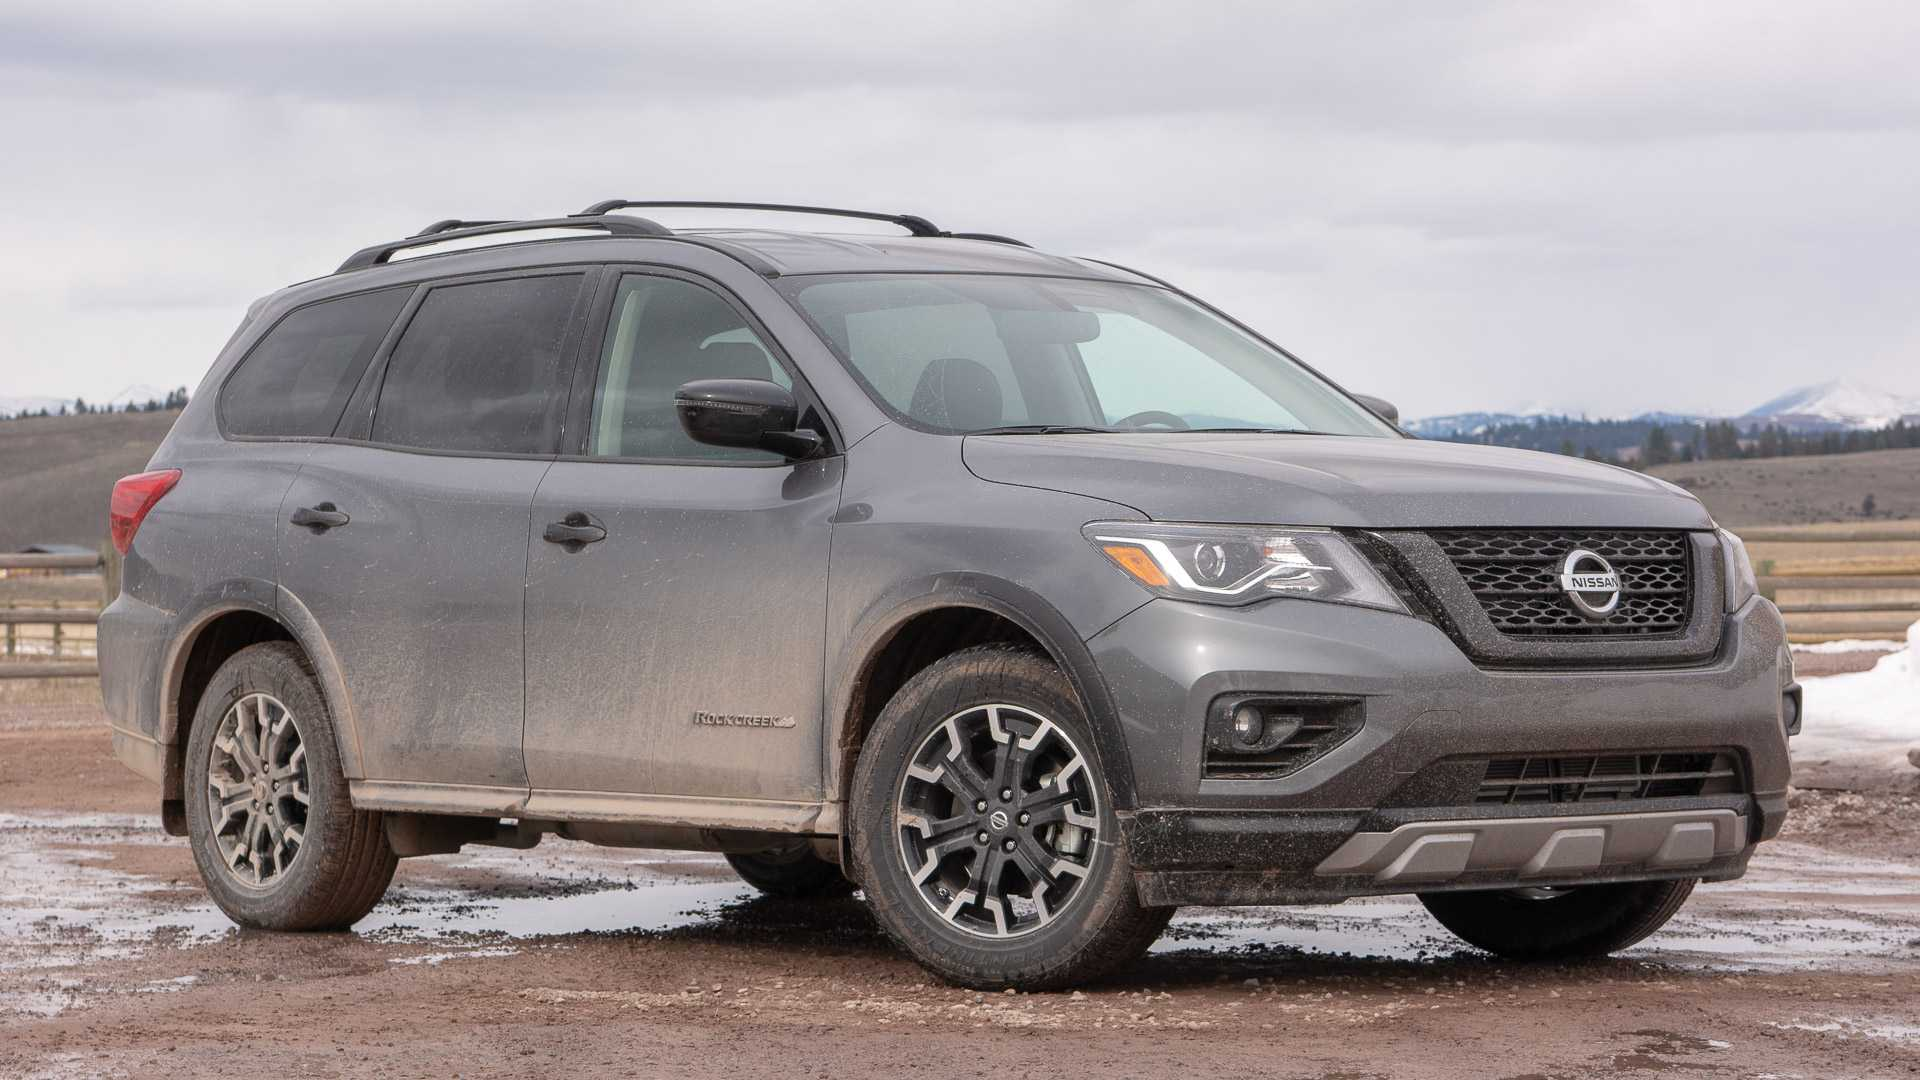 80 New 2019 Nissan Pathfinder Price And Release Date